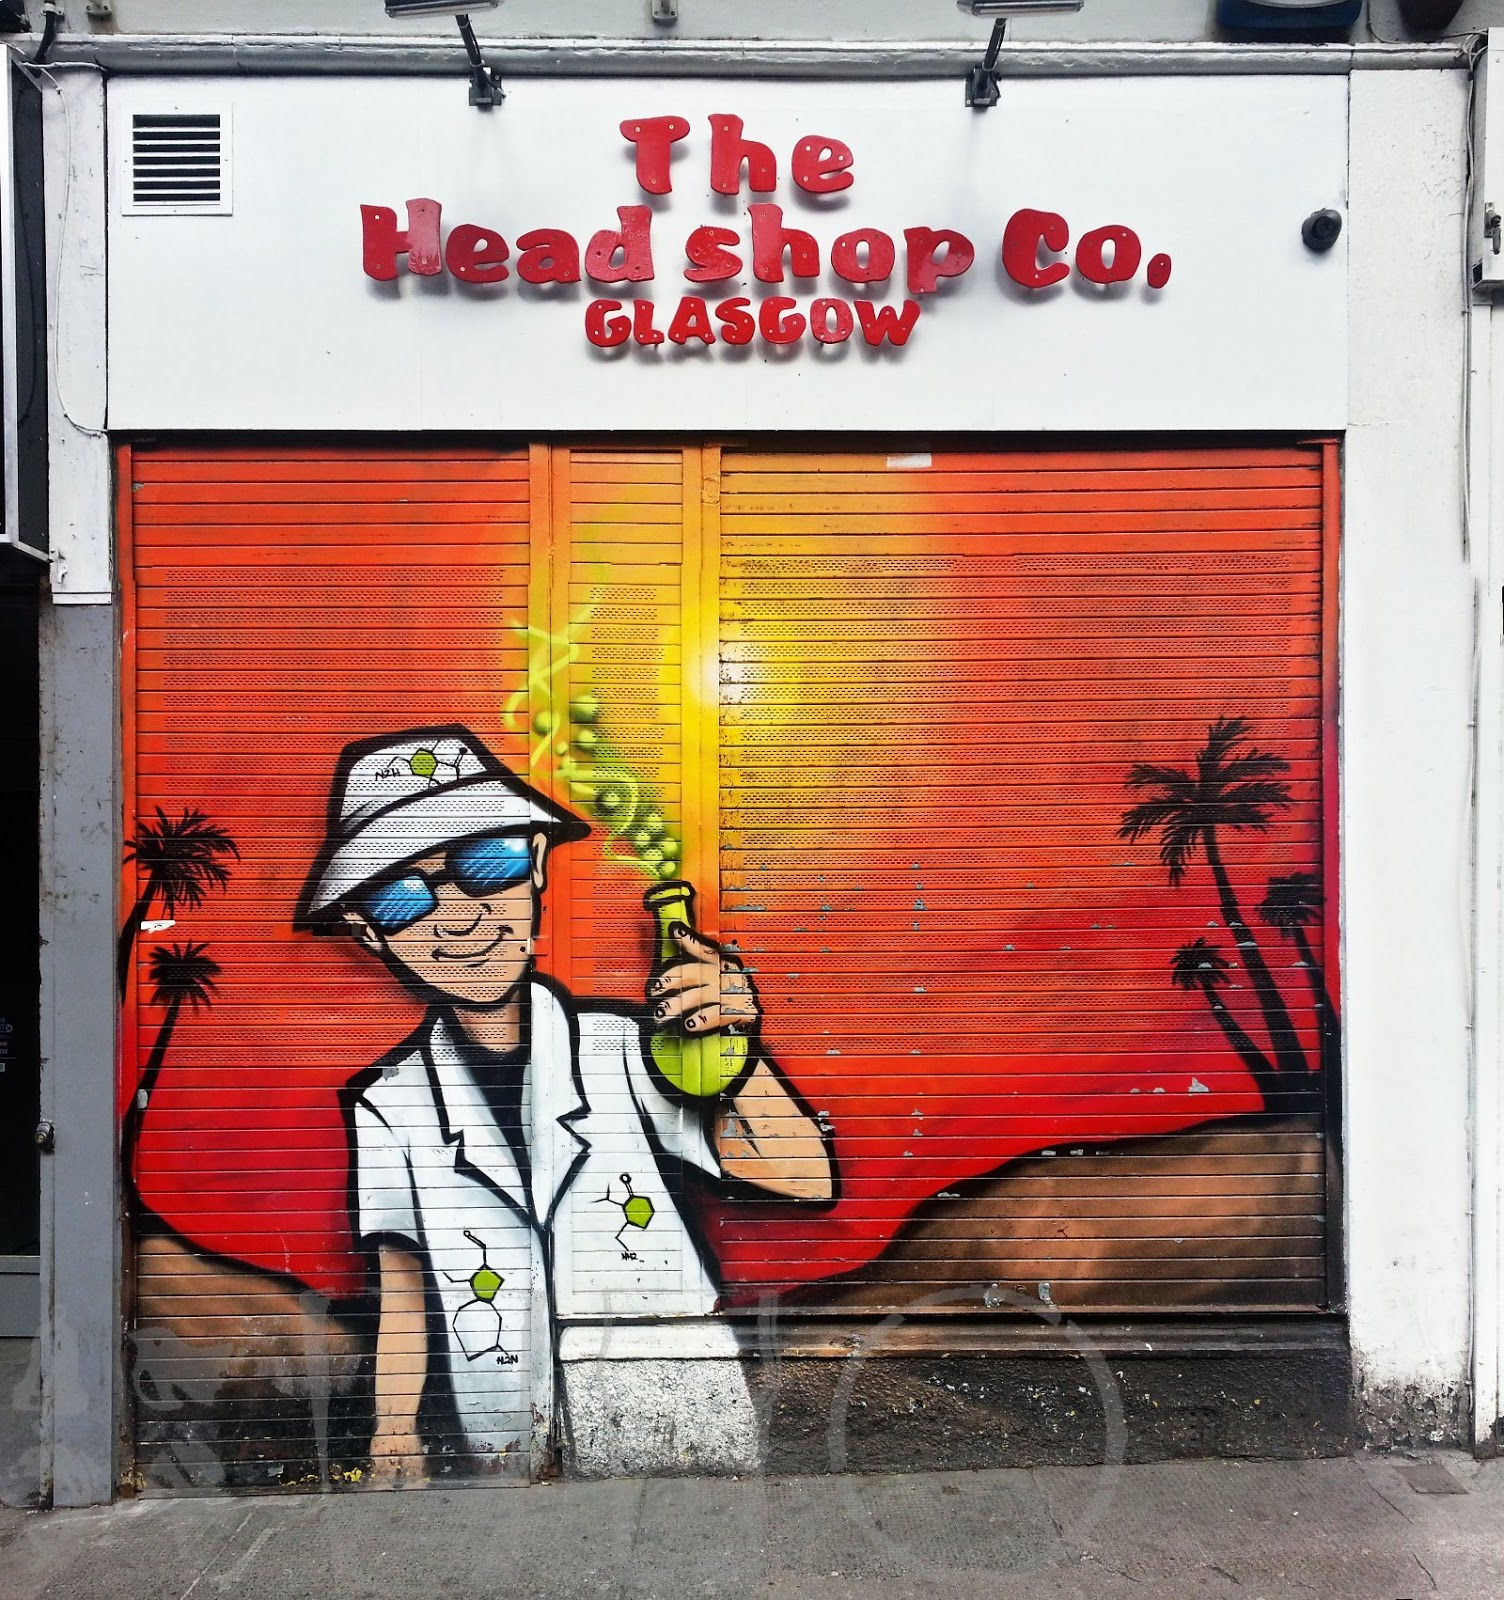 The Head SHop, Glasgow